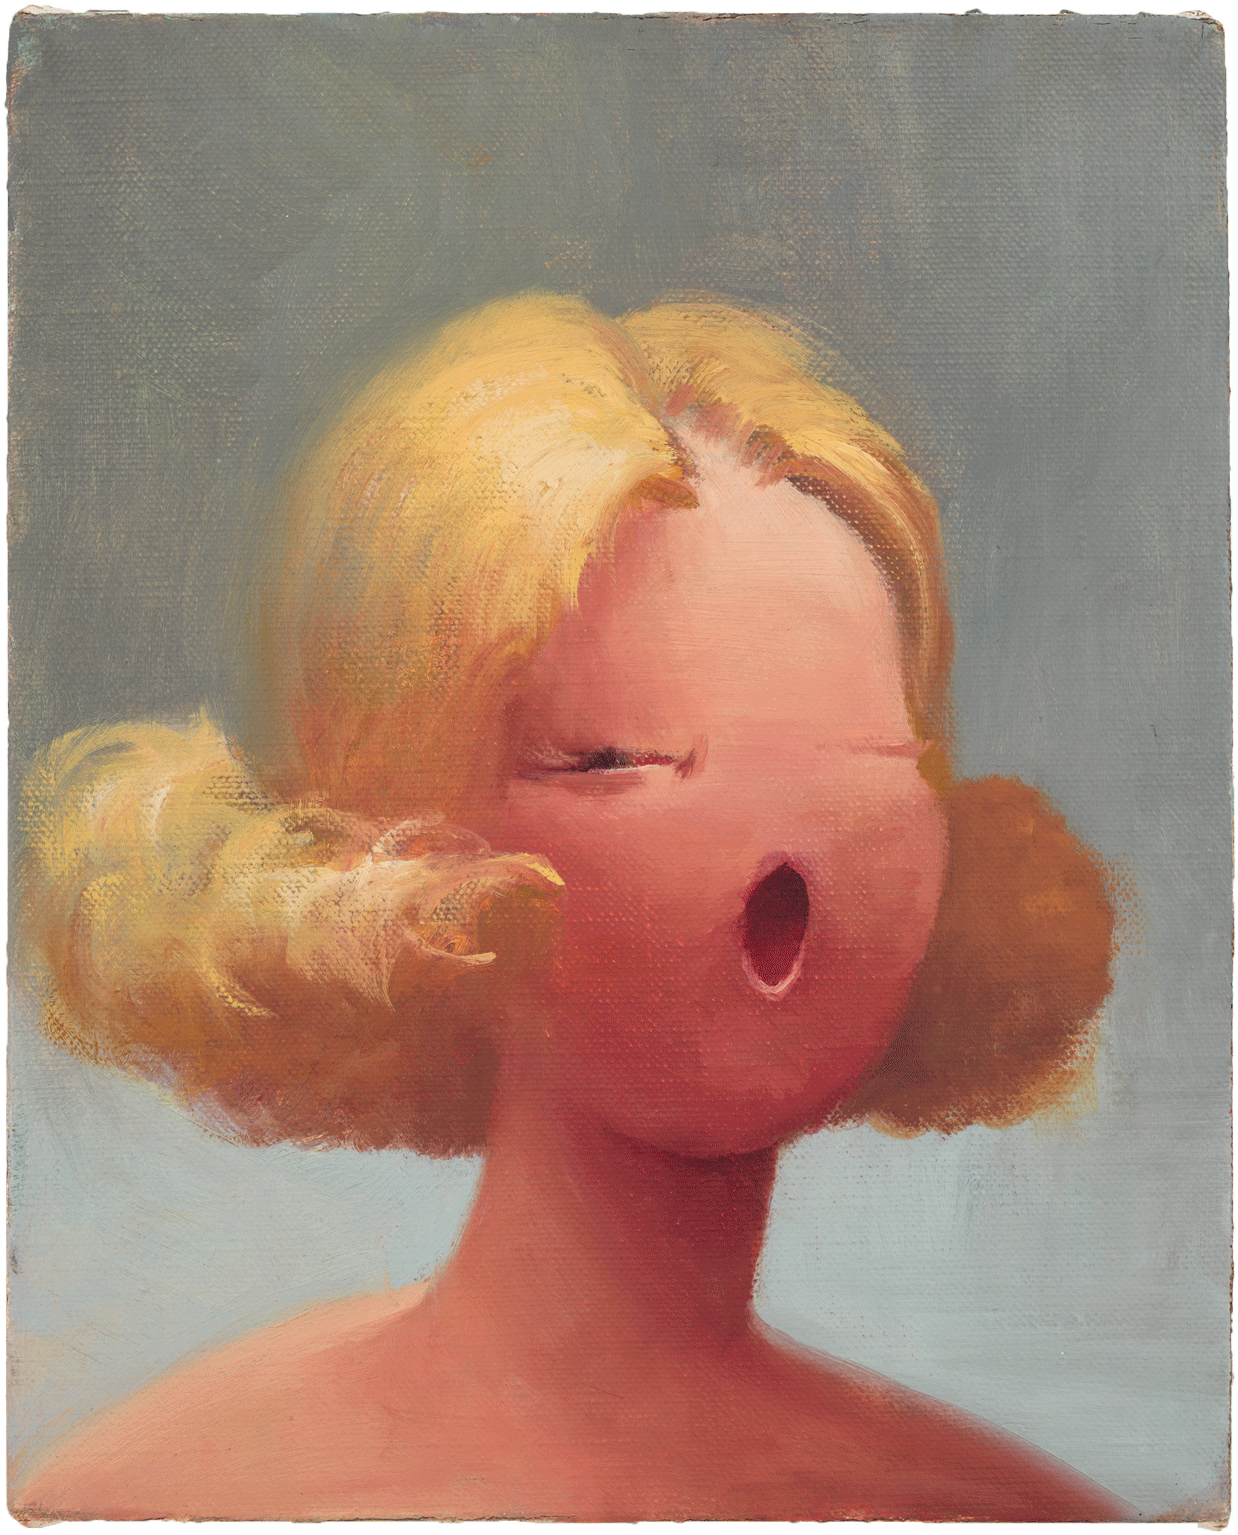 Lisa Yuskavage, Oh 2, 1995, oil on linen, 10 x 8 inches (Private Collection, Milan, image courtesy of David Zwirner Gallery)